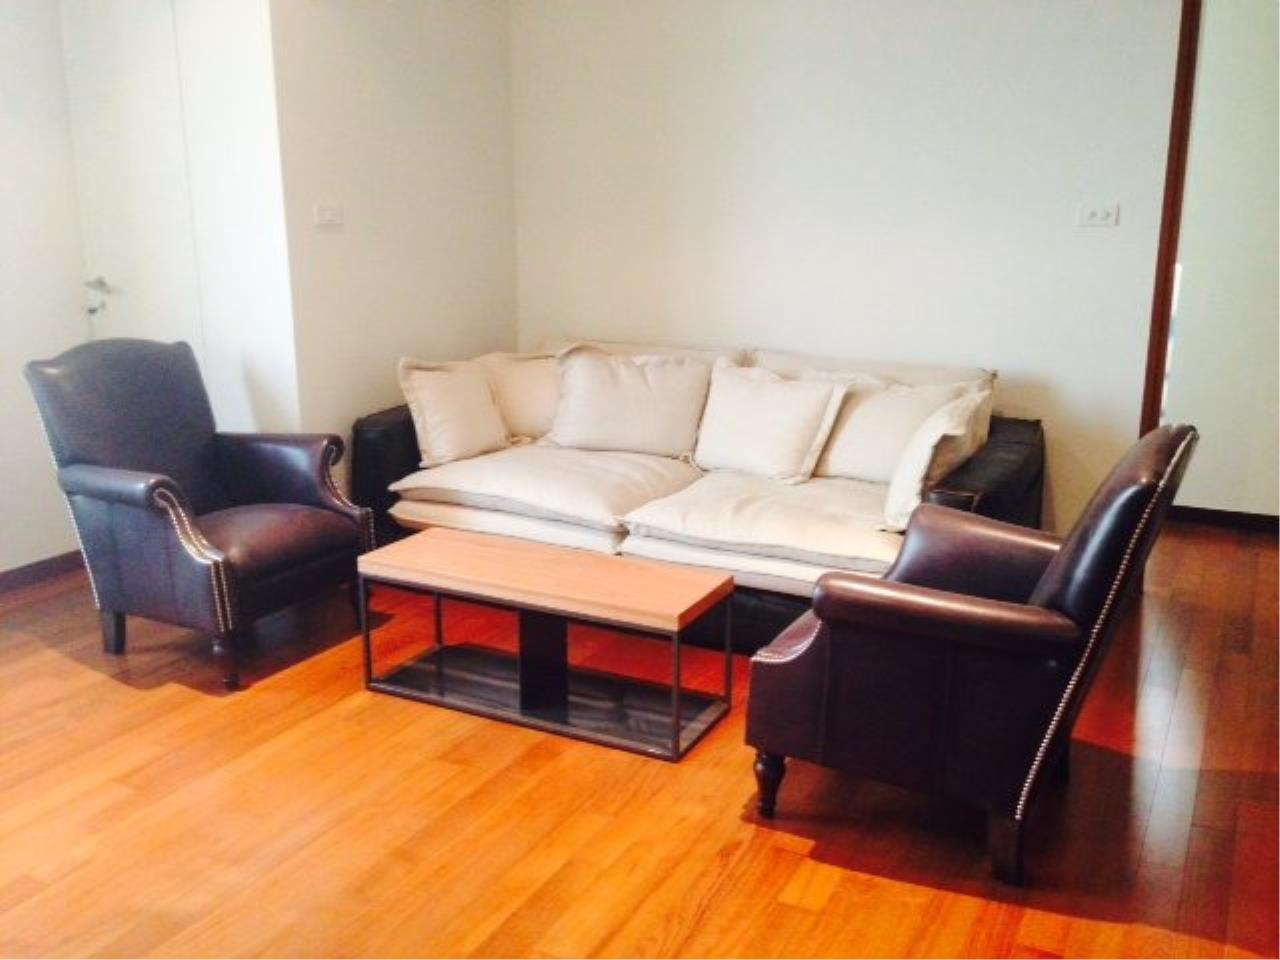 Piri Property Agency's Bright 2 Bedrooms Condo in the Ashton Building for rent on high floor 2